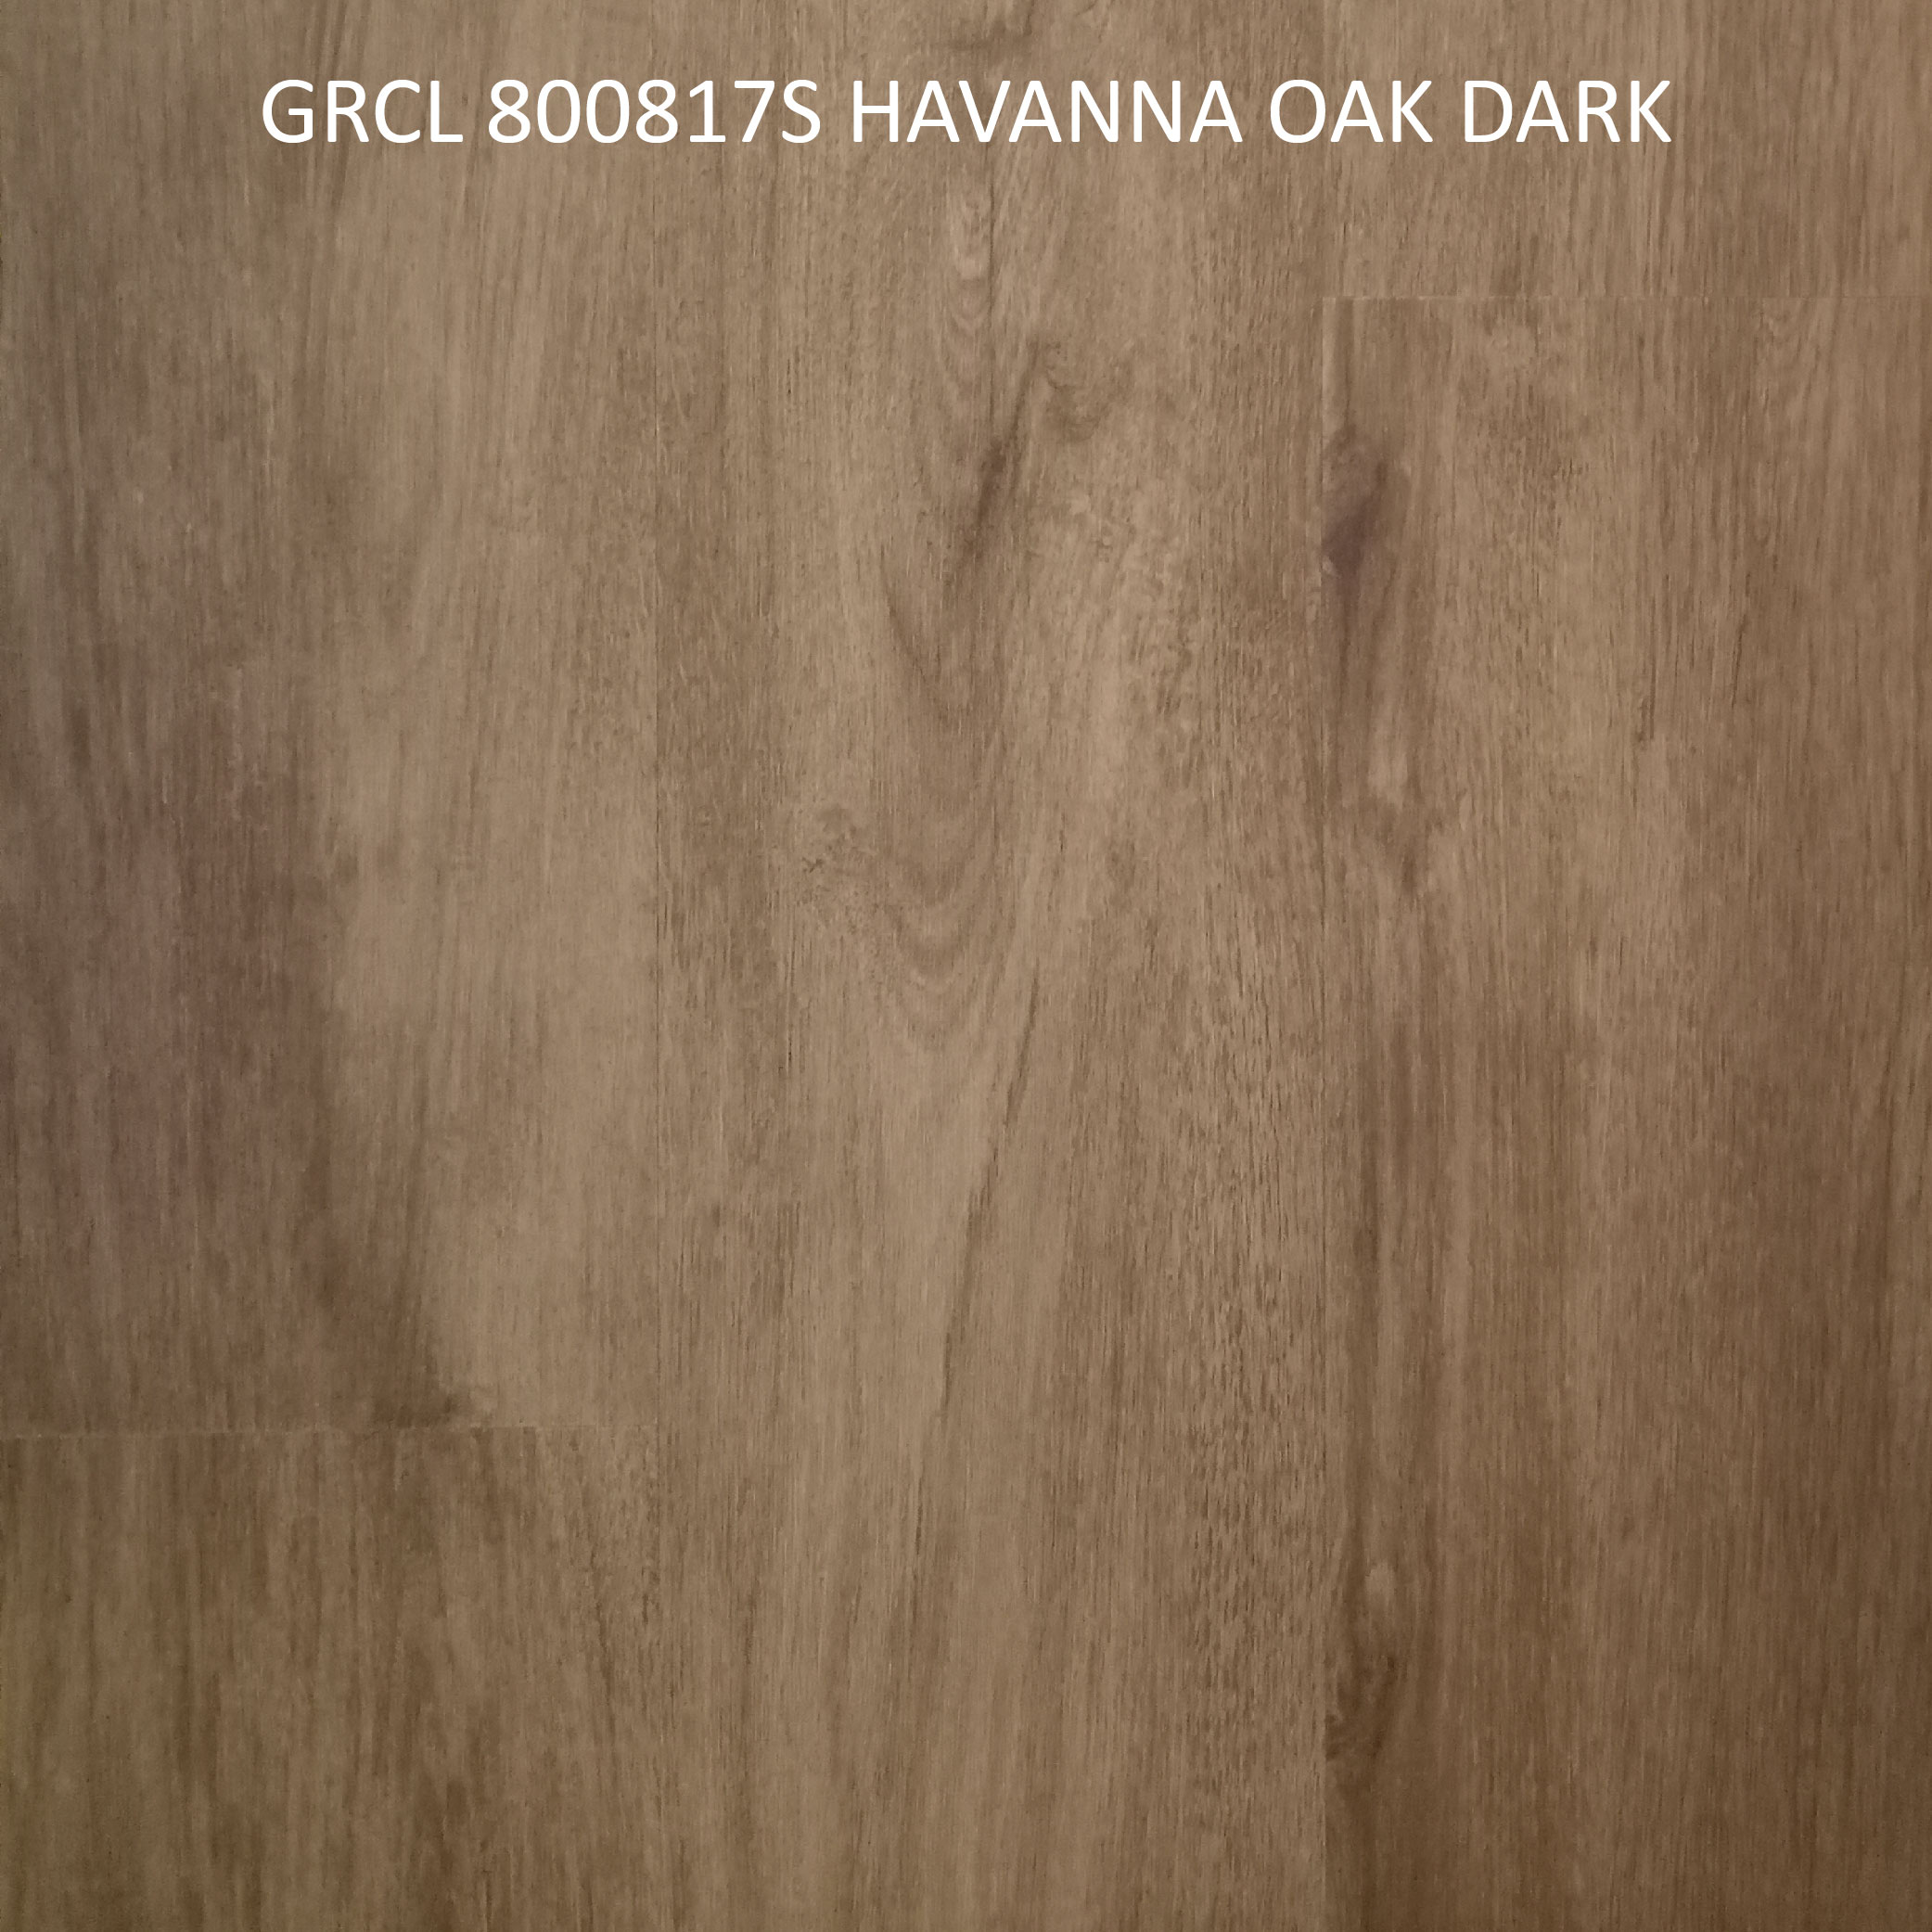 GRCL 800817S HAVANNA OAK DARK